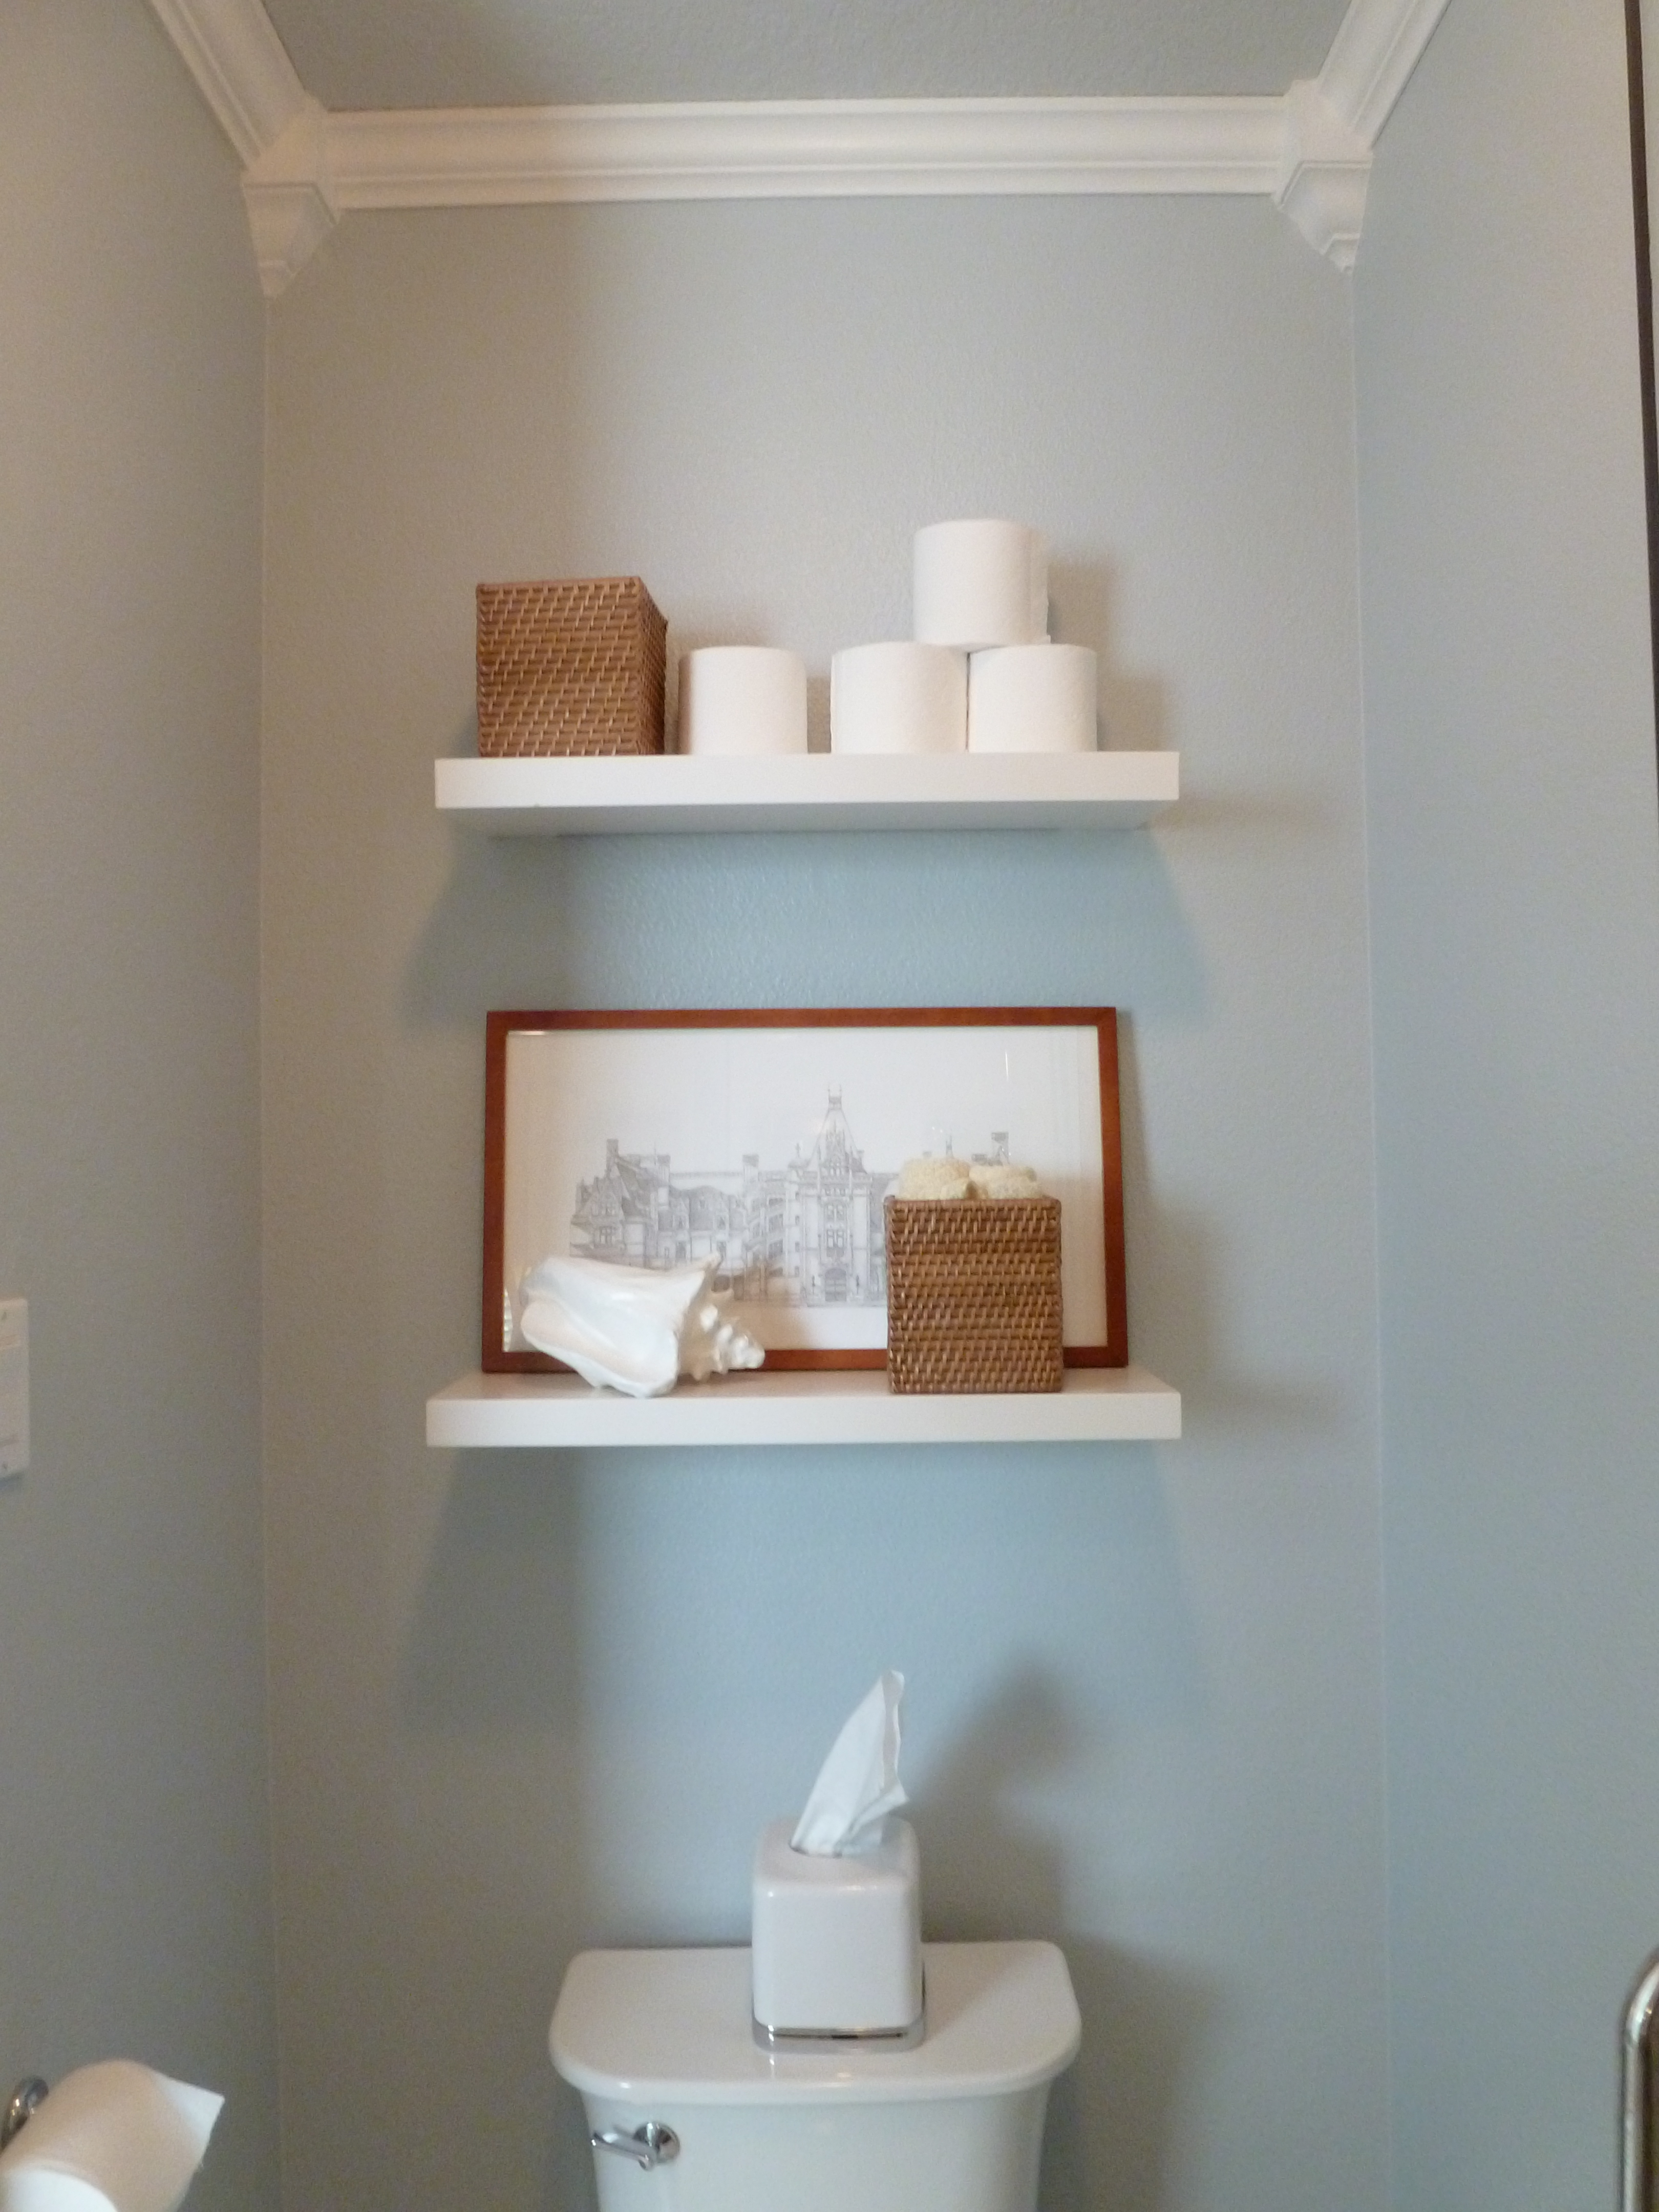 bathroom crown molding bathroom crown molding houzz classy cabinet crown molding home depot bathroom bathroom trim molding